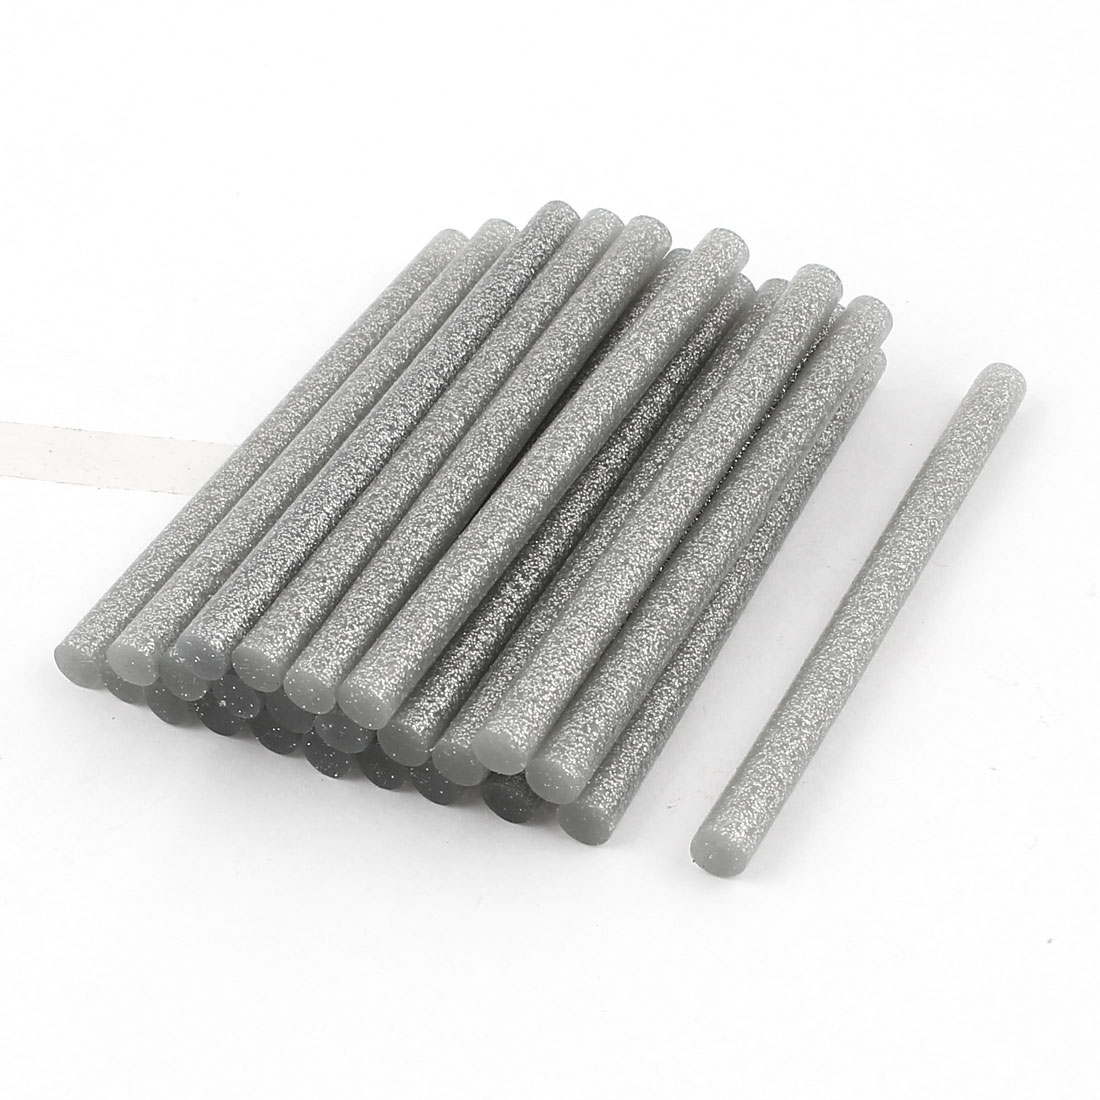 24 Pcs Silver Tone 7mm Diameter 100mm Length Crafting Models Hot Melt Glue Stick